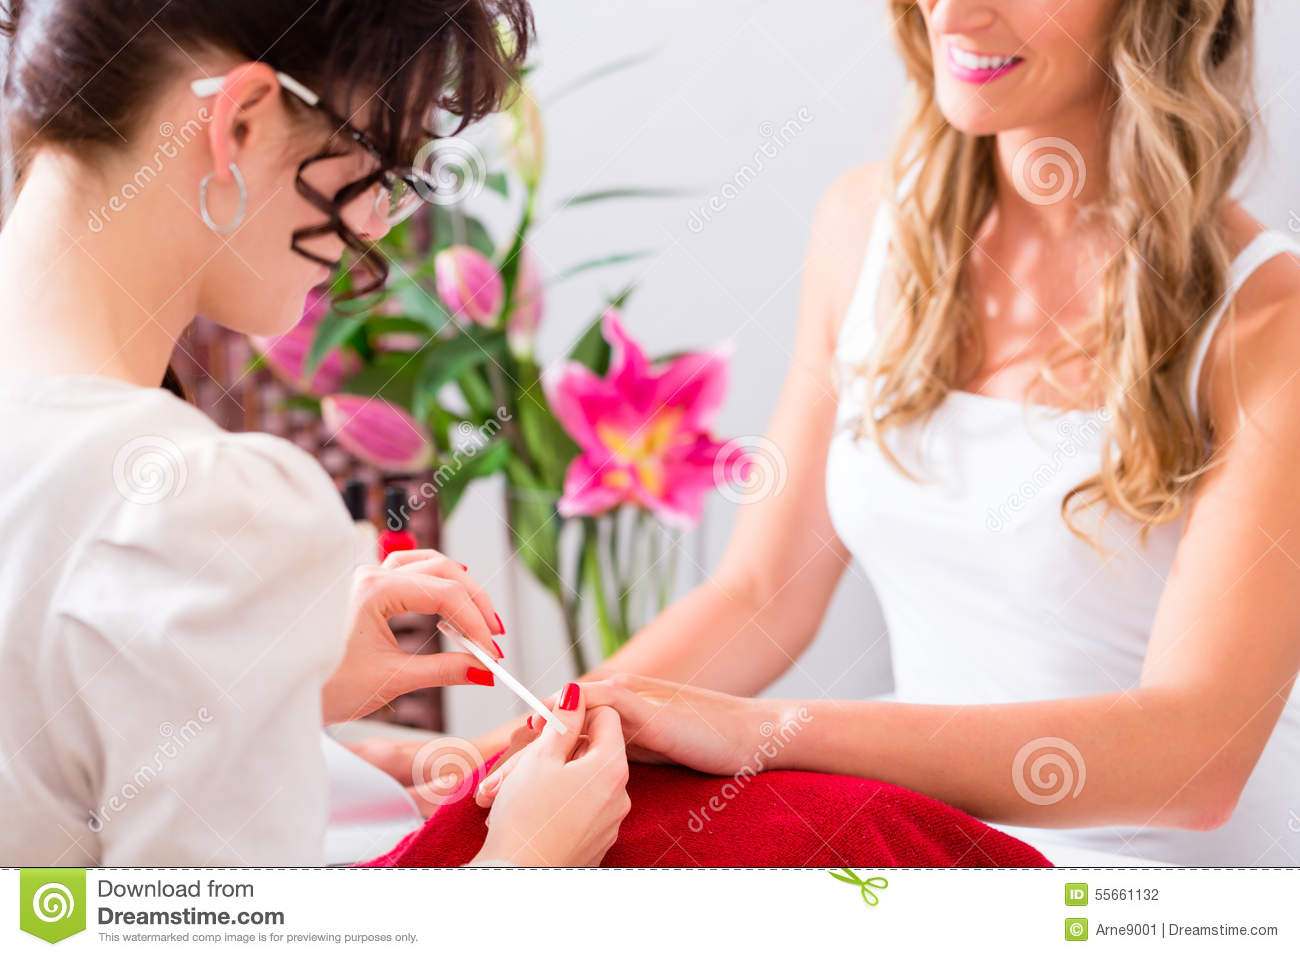 Woman At Manicure In Nail Parlor With File Stock Photo - Image of ...